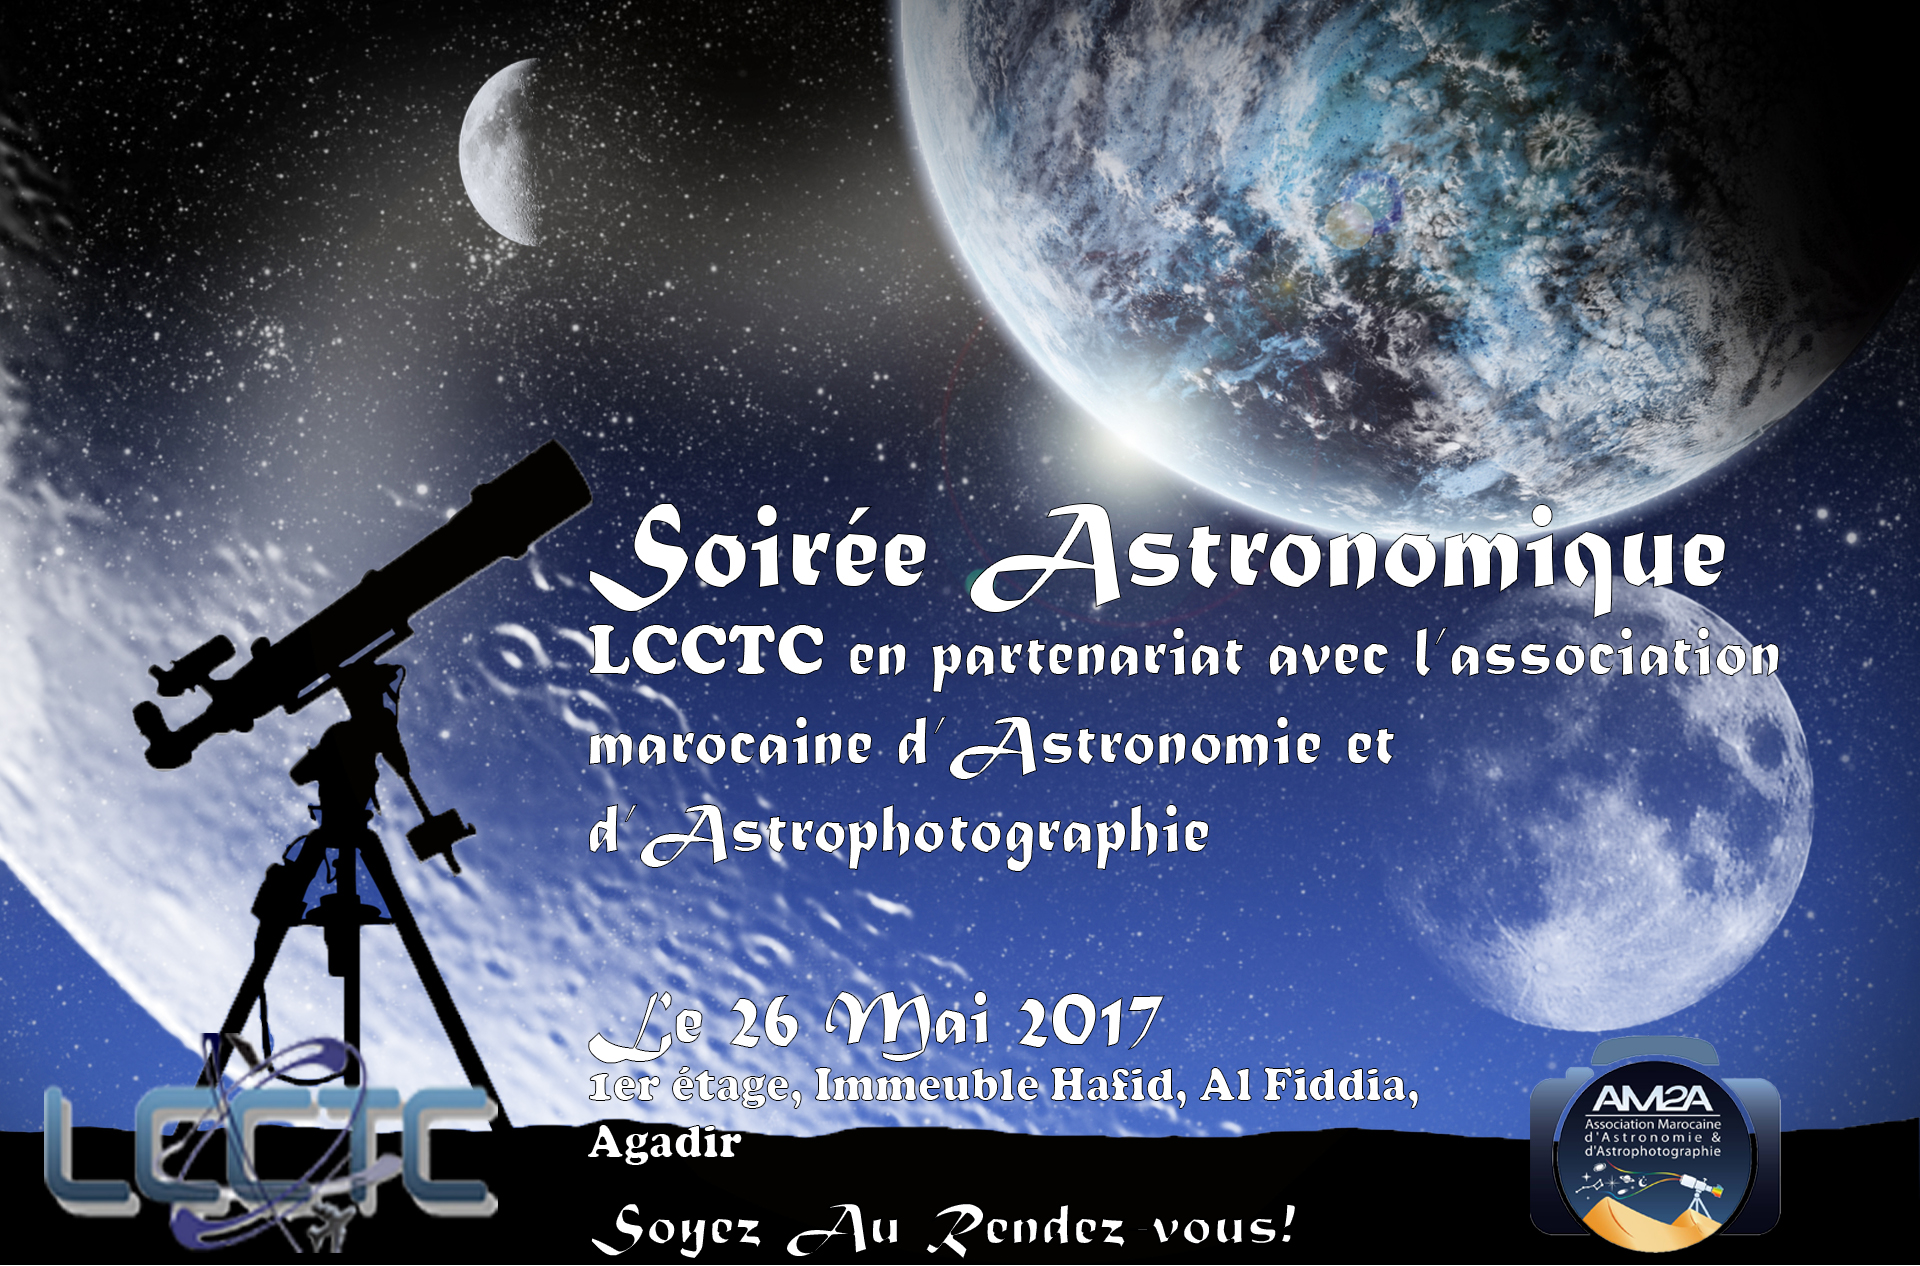 http://lcctc.ma/wp-content/uploads/2015/11/Astronomie-Keynote-das_5.jpg